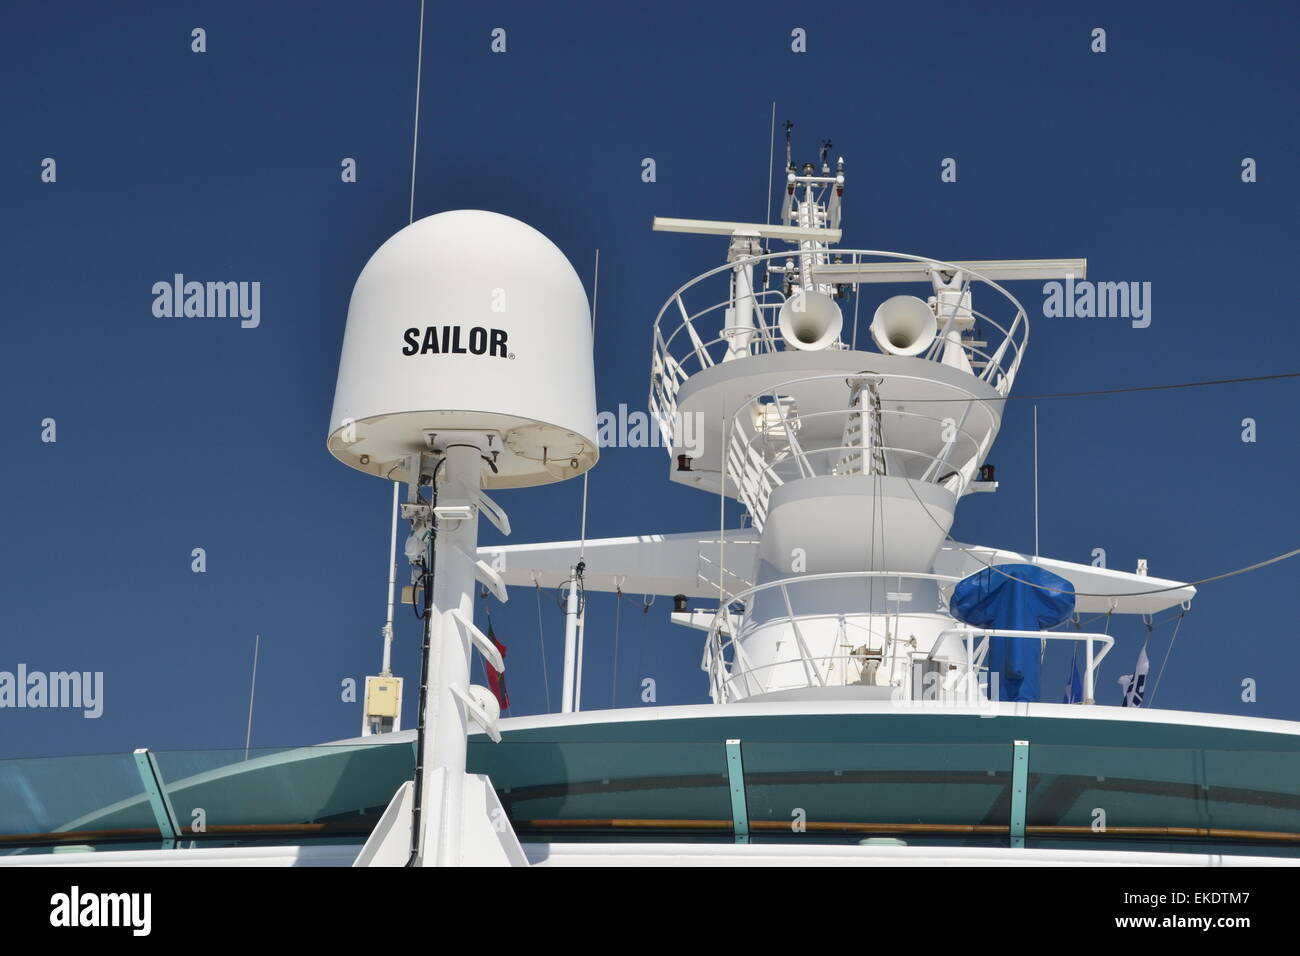 Cobham Sailor Ku-band satellite TV antenna on board a ship. Stock Photo